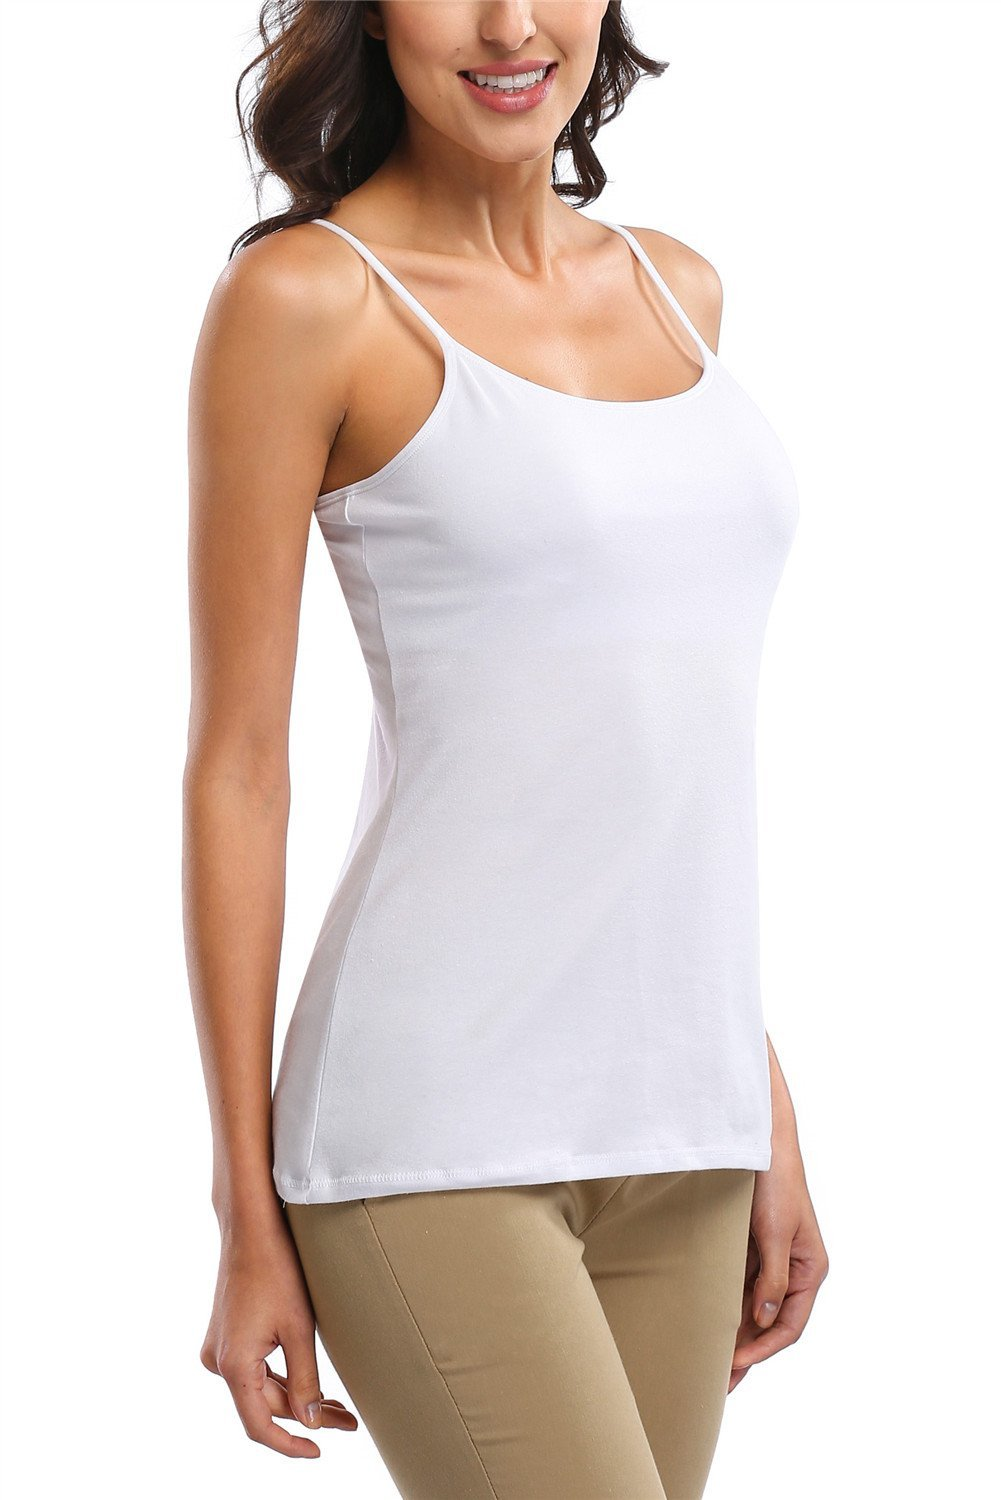 ALove Women Soft Camisoles Basic Cami Tops Shelf Bra Casual Tank Tops 2 Pack Small by ALove (Image #2)